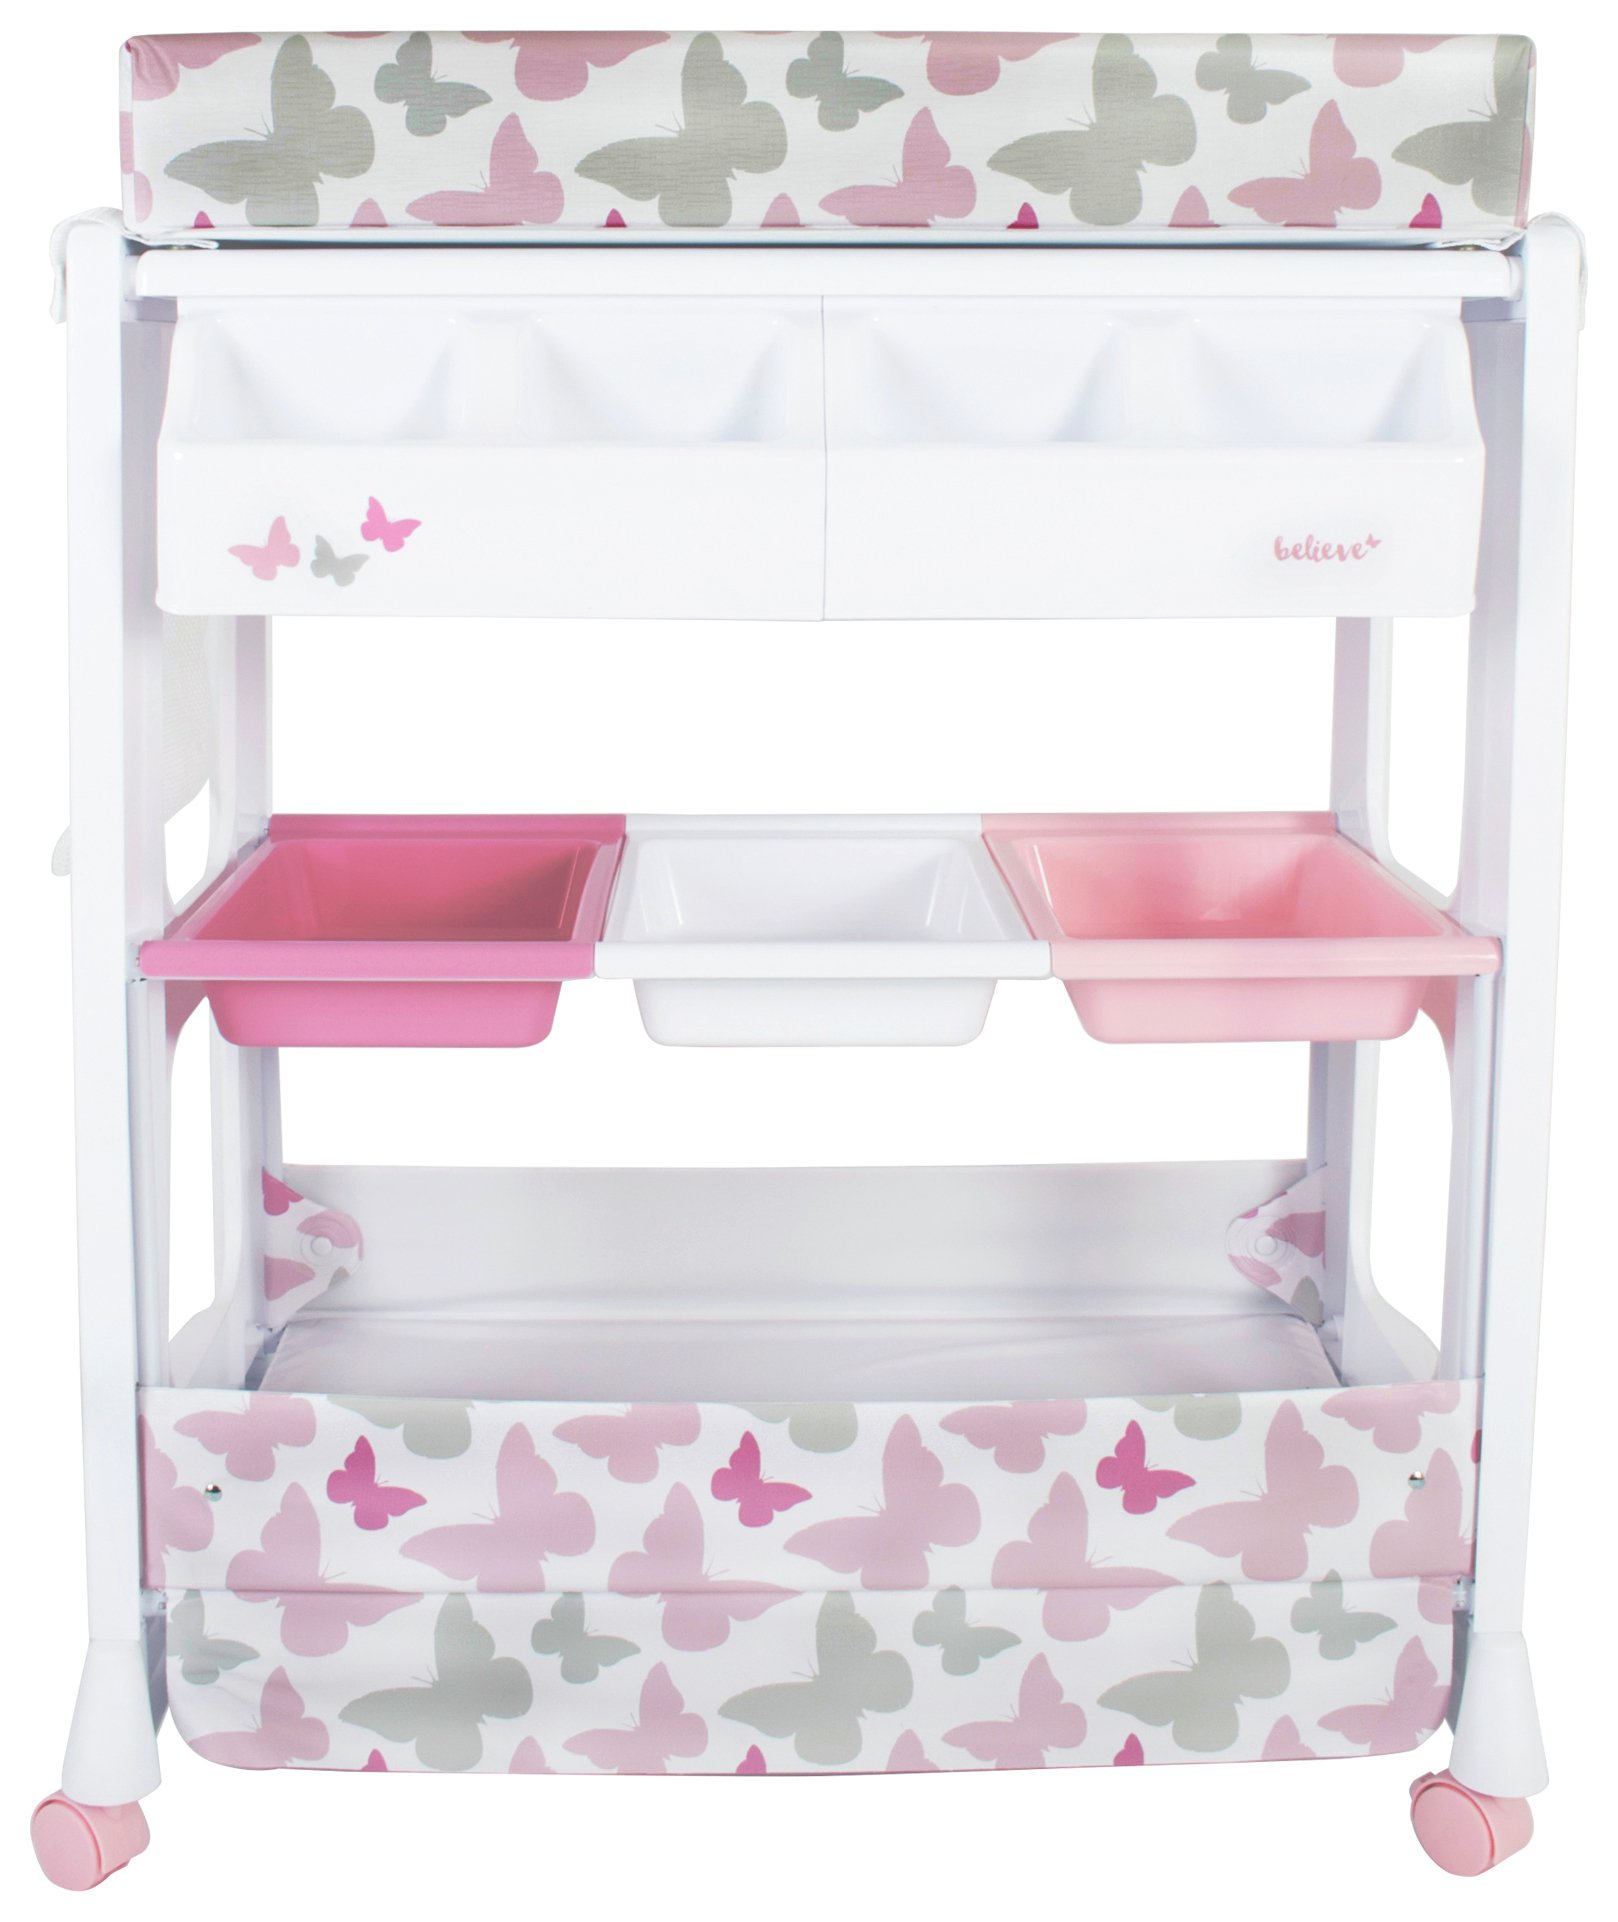 Image of My Babiie Changing Unit - Pink Butterfly